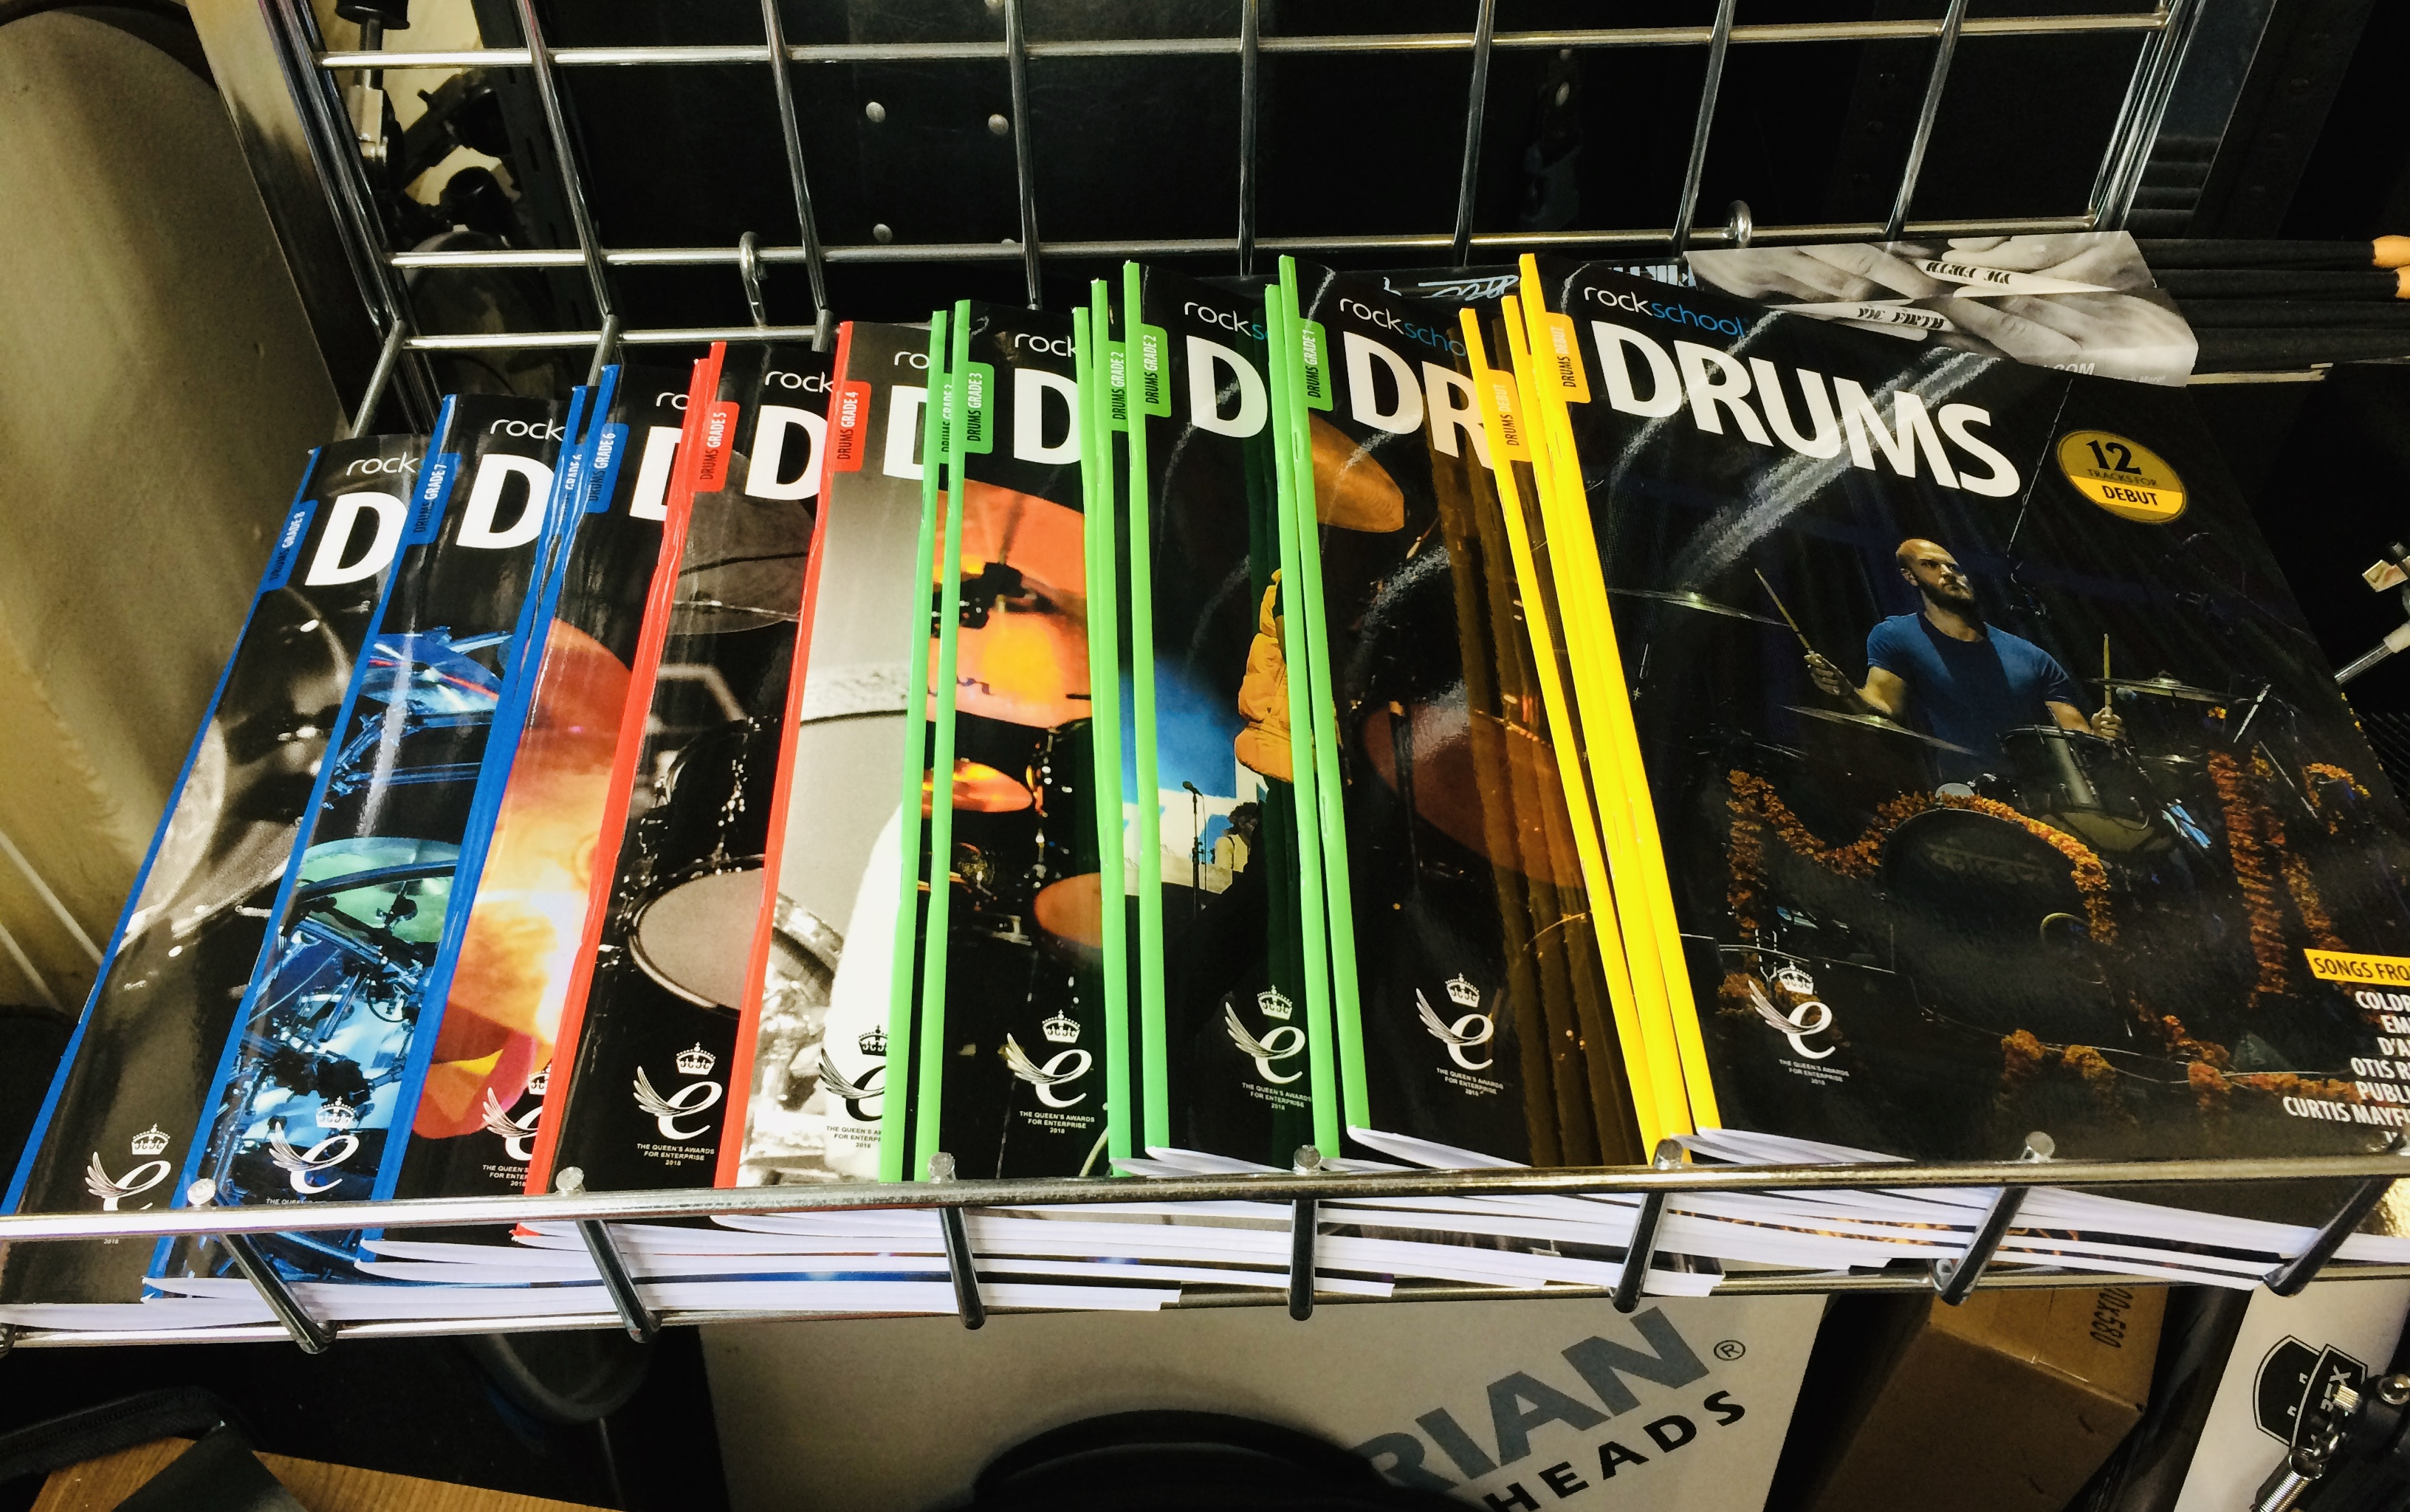 Rockschool 2018 drum kit syllabus books picture